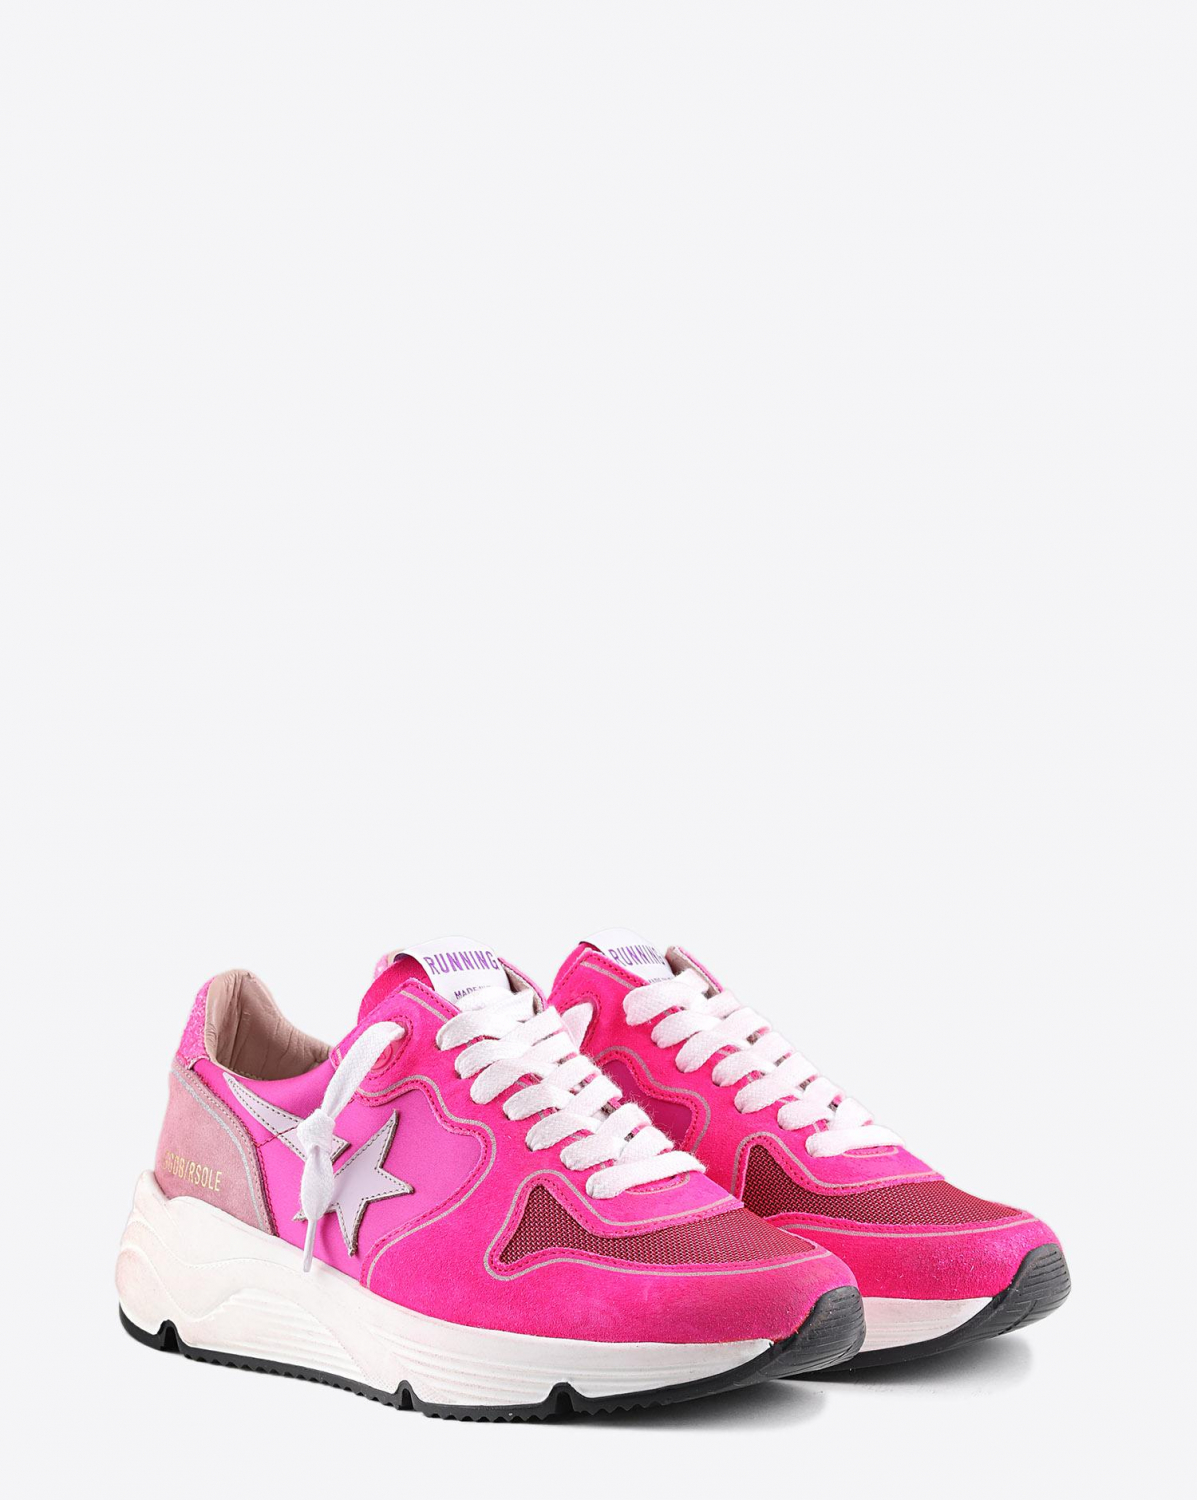 Golden Goose Woman Pré-Collection Sneakers Running Sole - Fuxia Suede - Pink Star - Glitter